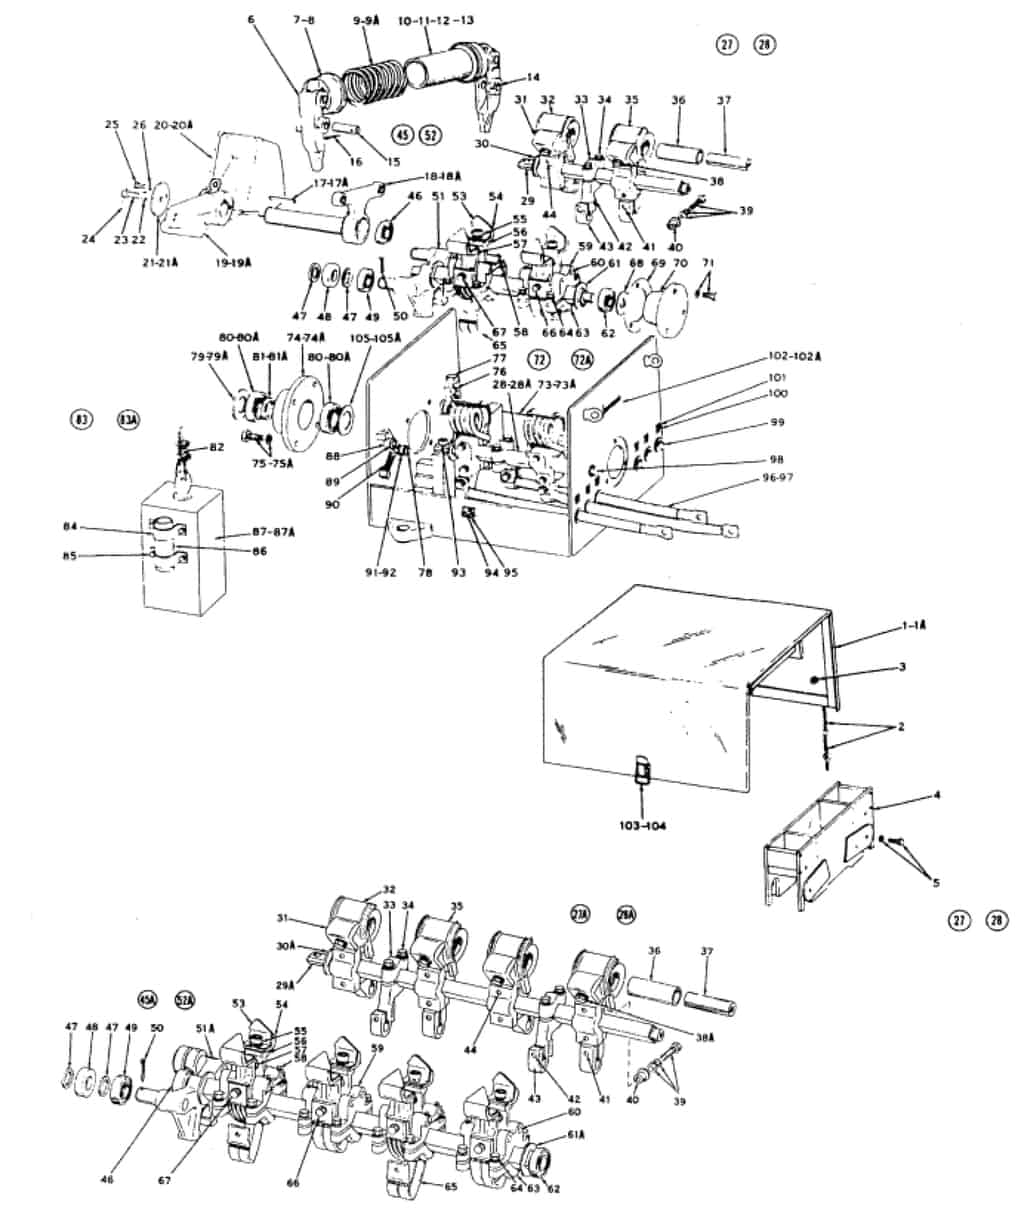 NO. 30 YOUNGSTOWN LIMIT SWITCH TYPE DDG SERIES A